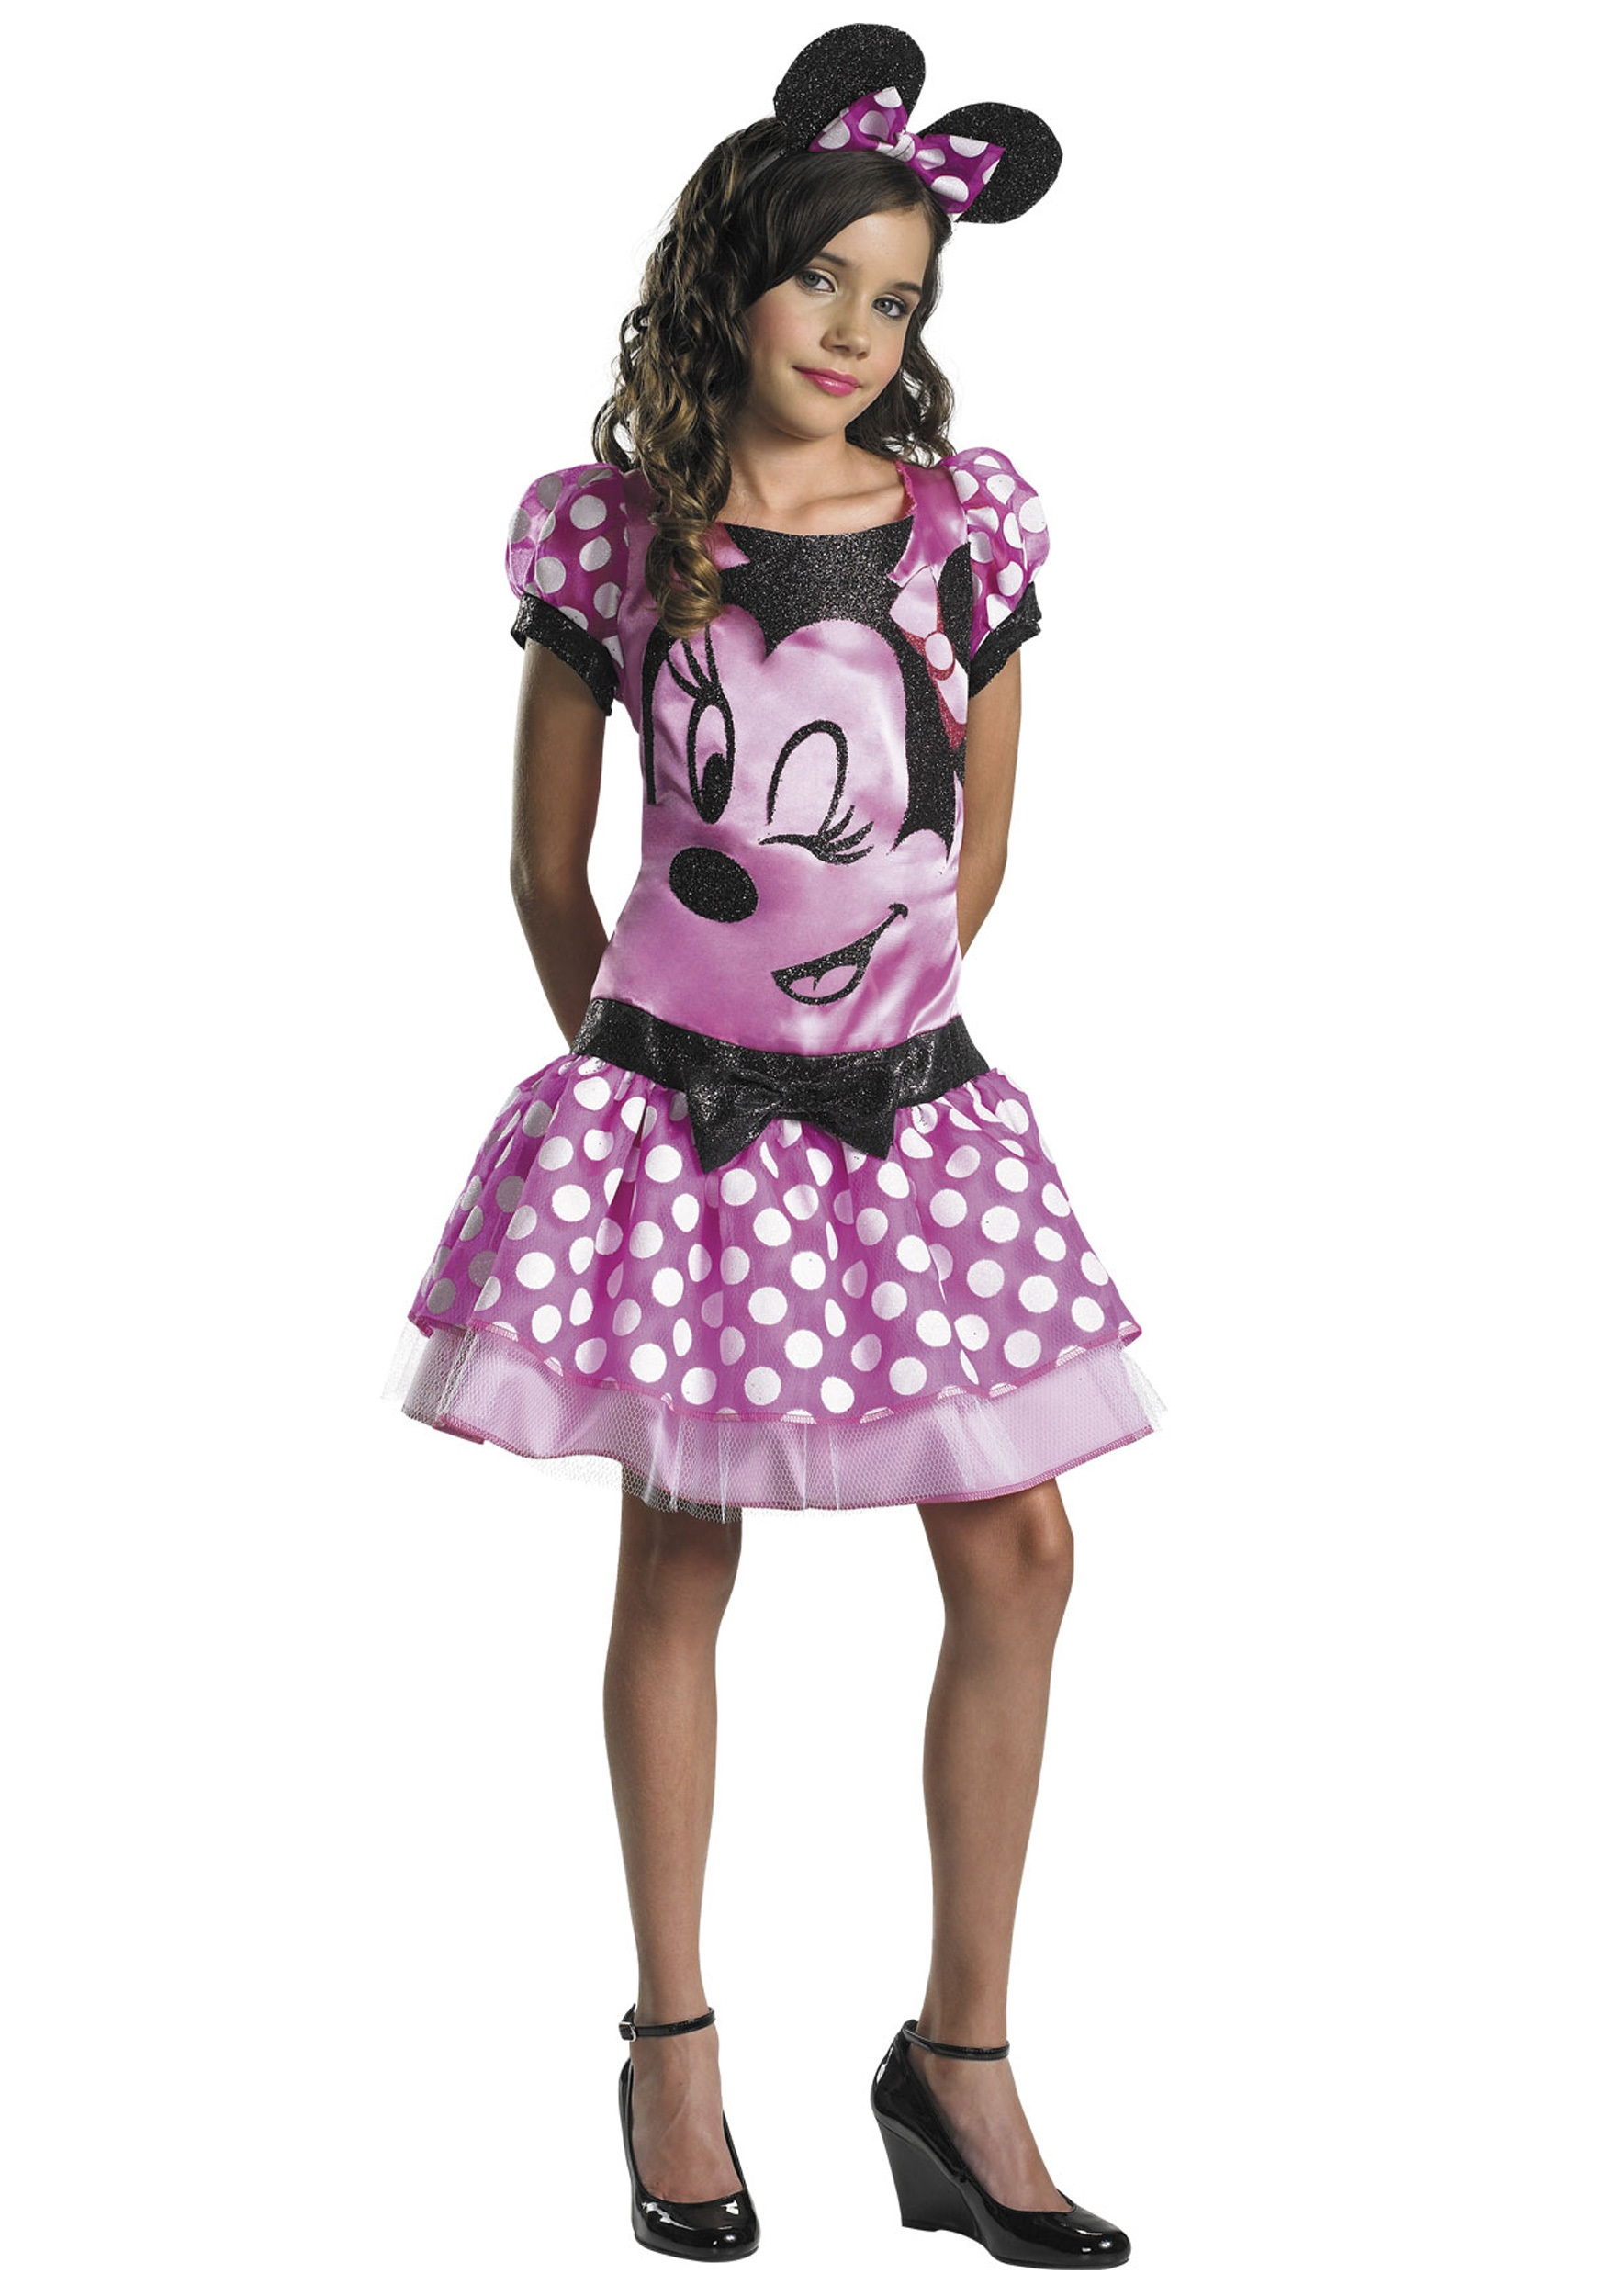 Girls Pink Minnie Mouse Costume  sc 1 st  Halloween Costumes & Girls Pink Minnie Mouse Costume - Halloween Costumes